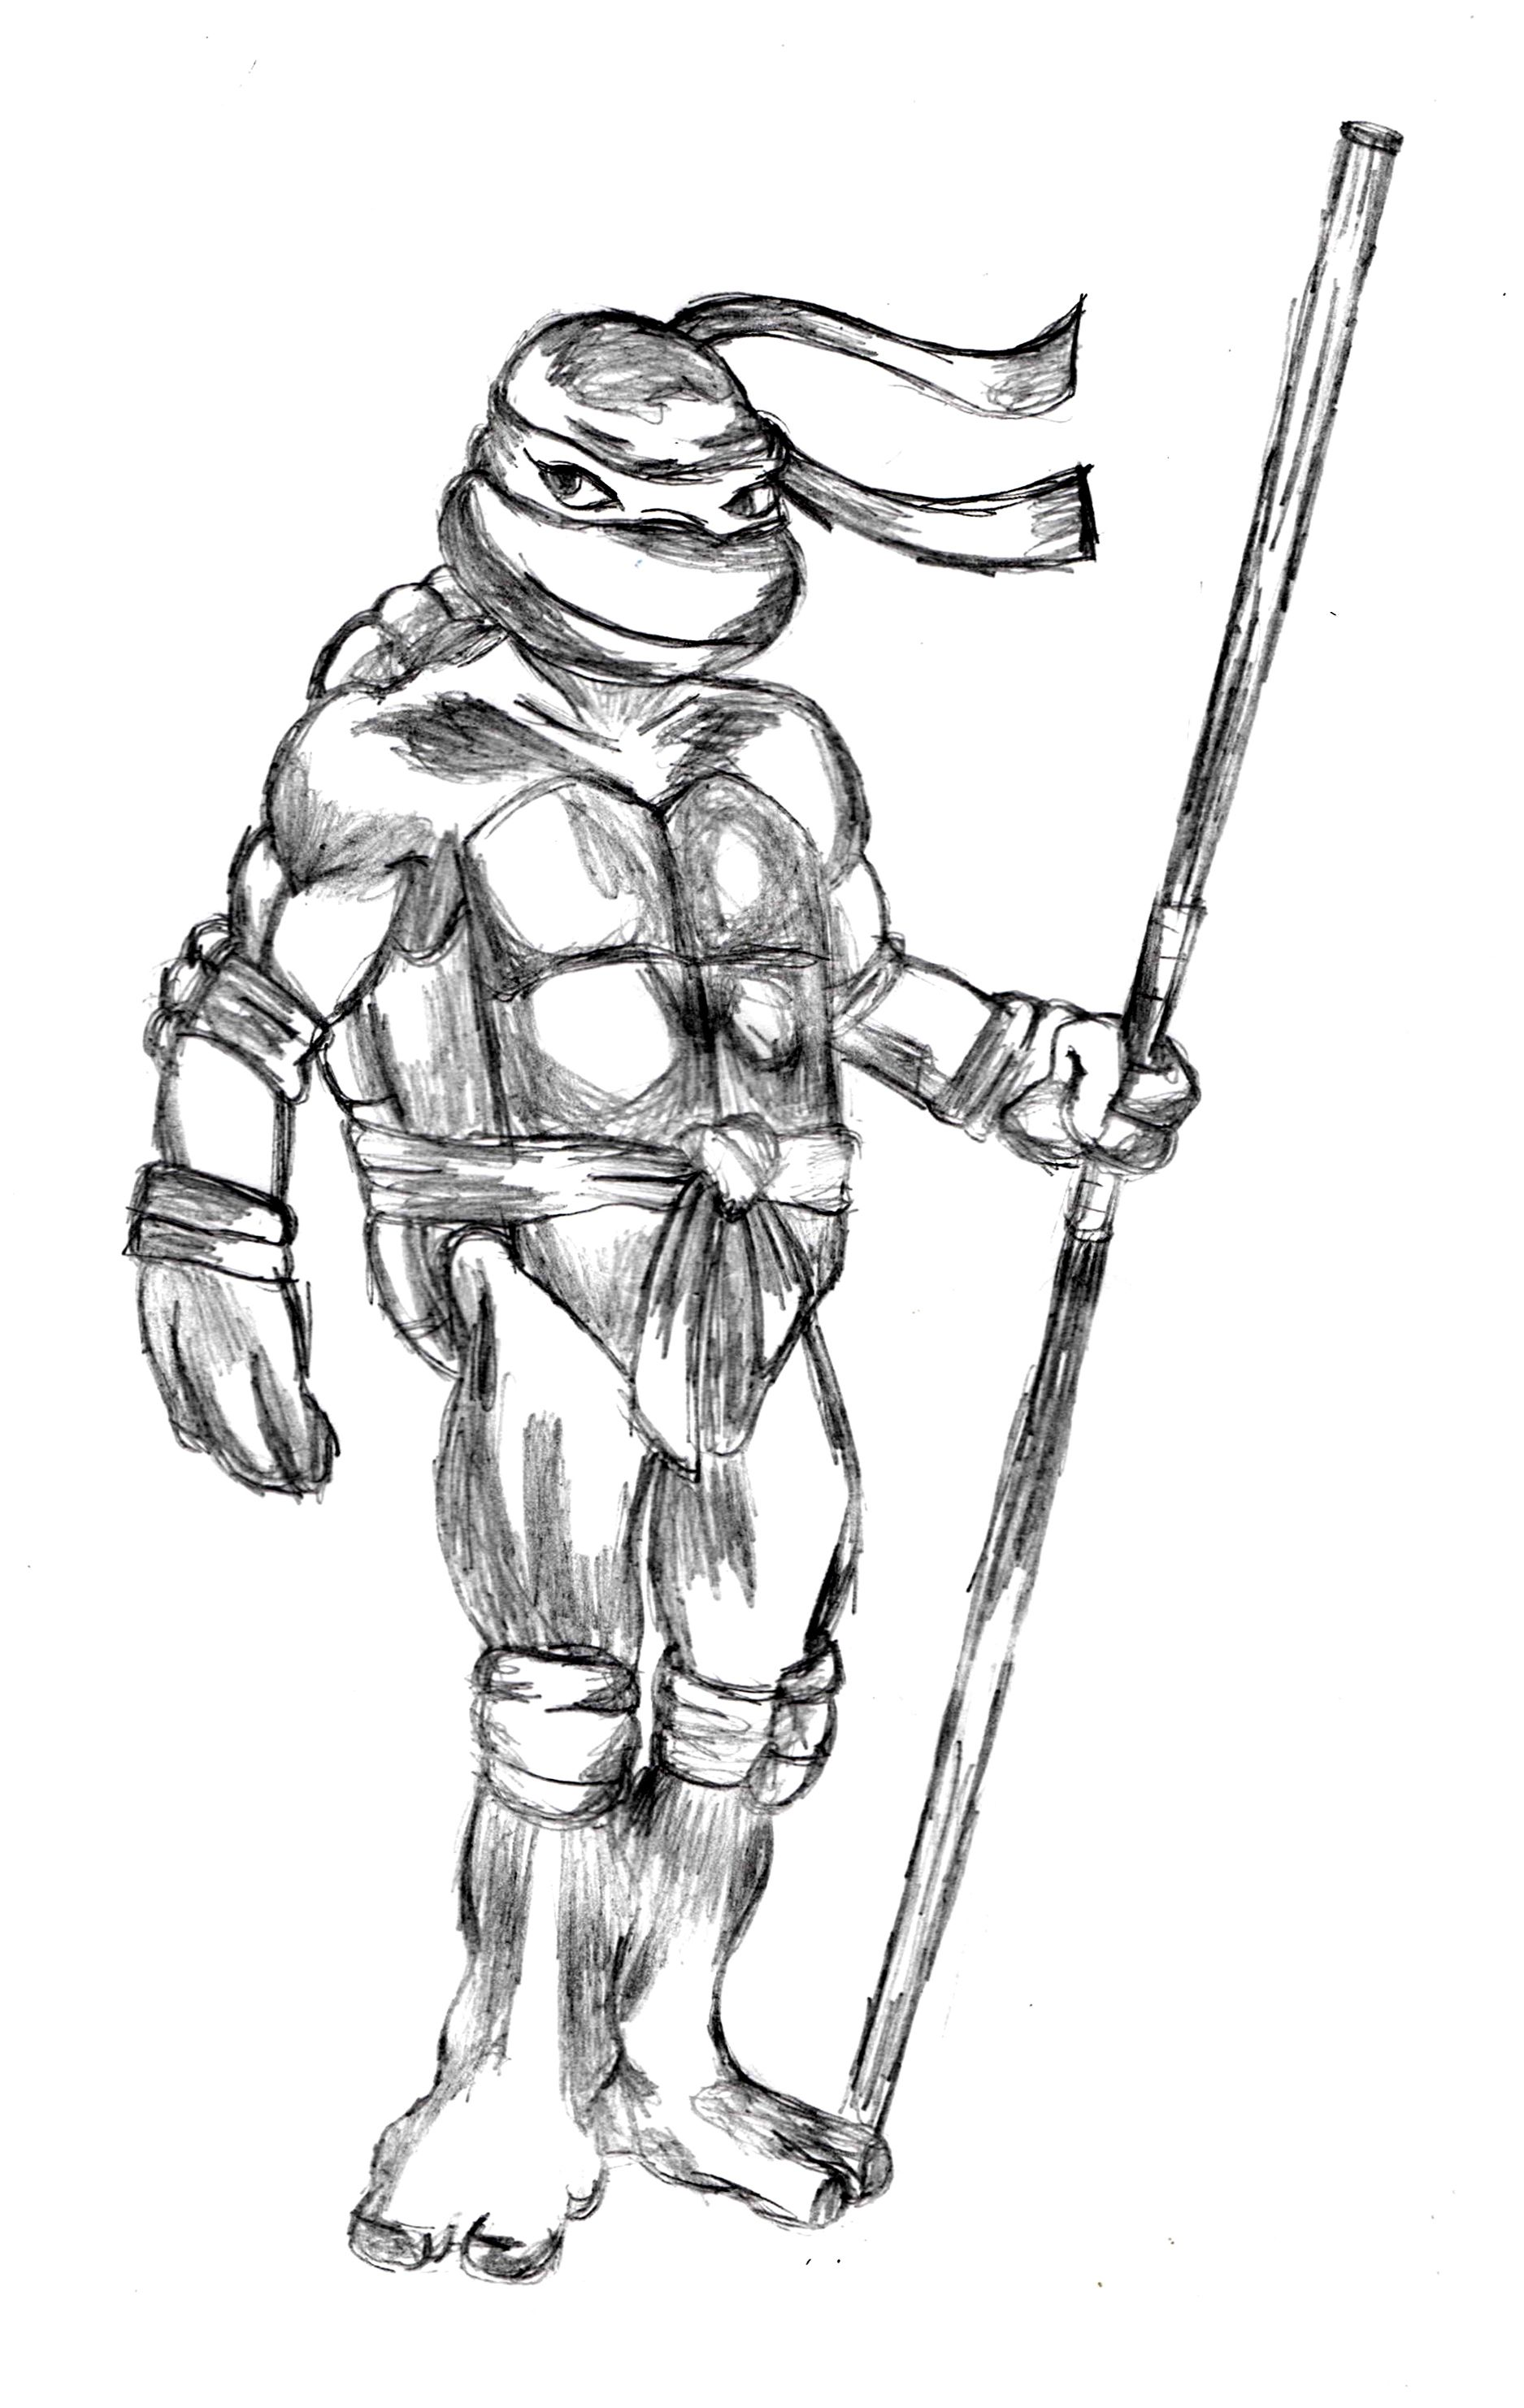 Donatello sketch http://drawingmanuals.com/manual/how-to ...